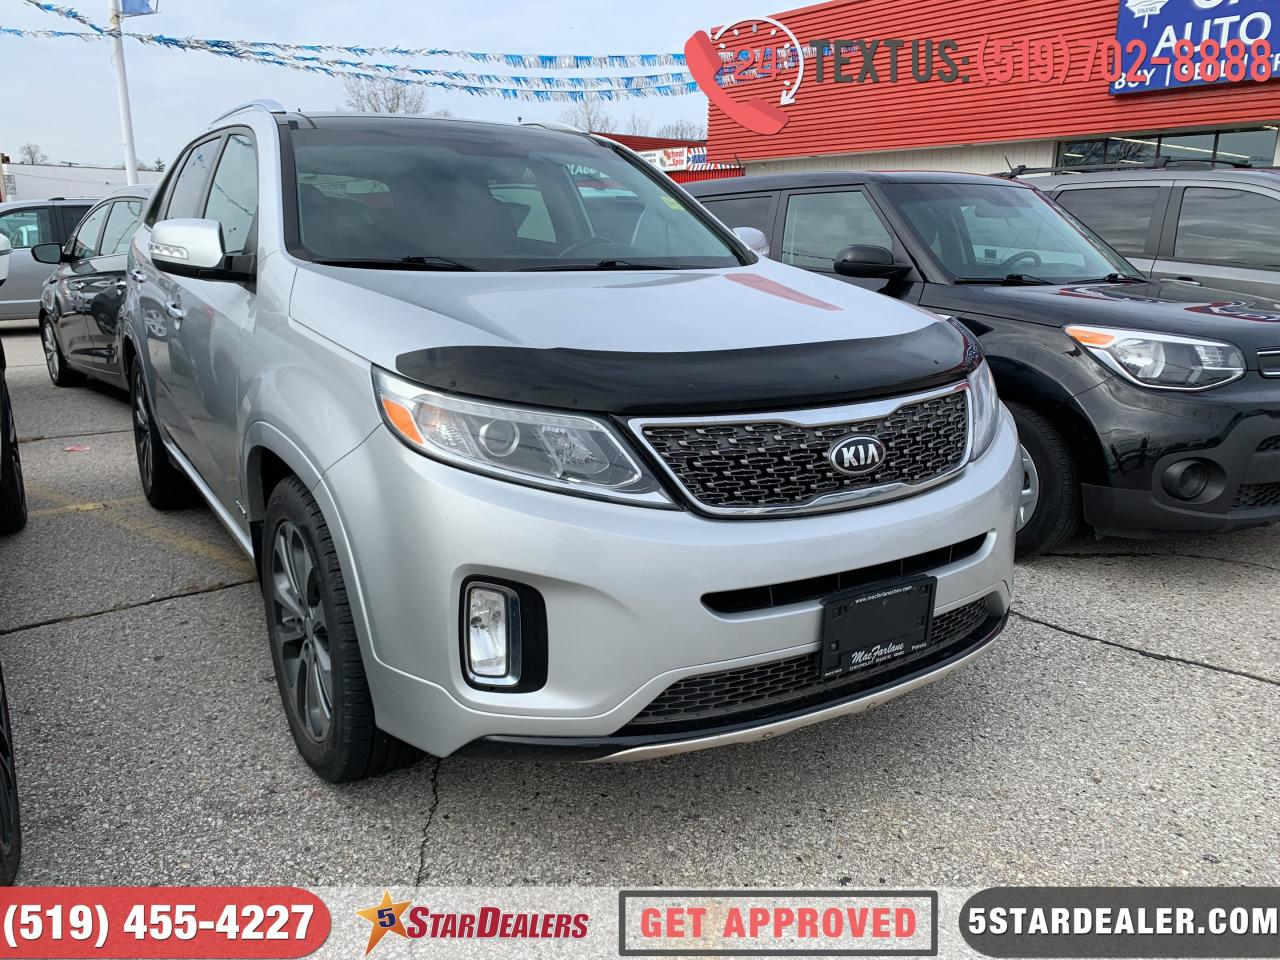 Used 2015 Kia Sorento SX | LEATHER | PANO ROOF | AWD for Sale in London, Ontario | Carpages.ca